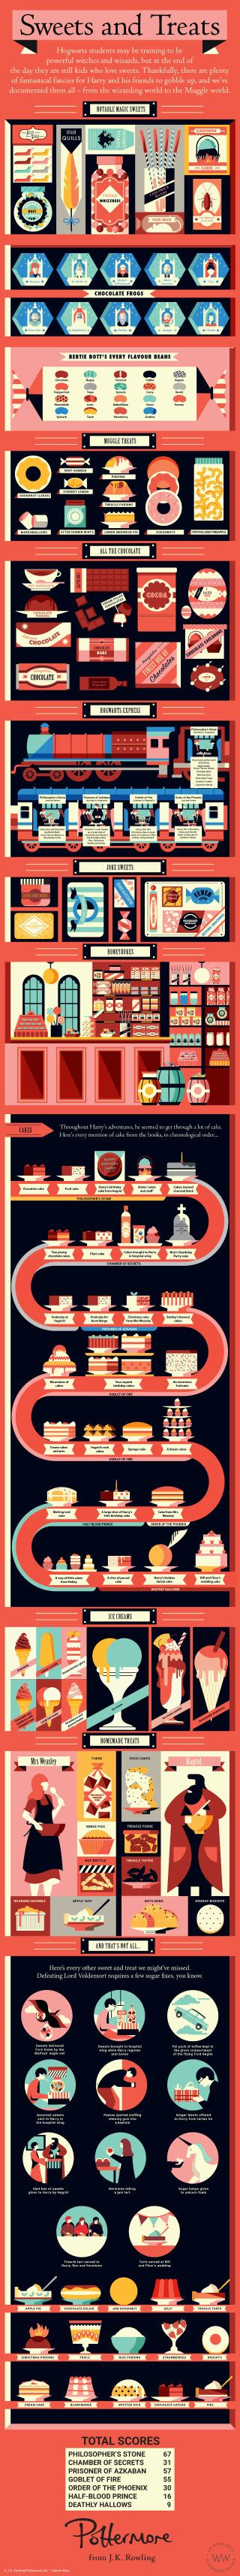 My word, I never realized how many sweets were in the Harry Potter books! ~ Sweets and Treats infographic